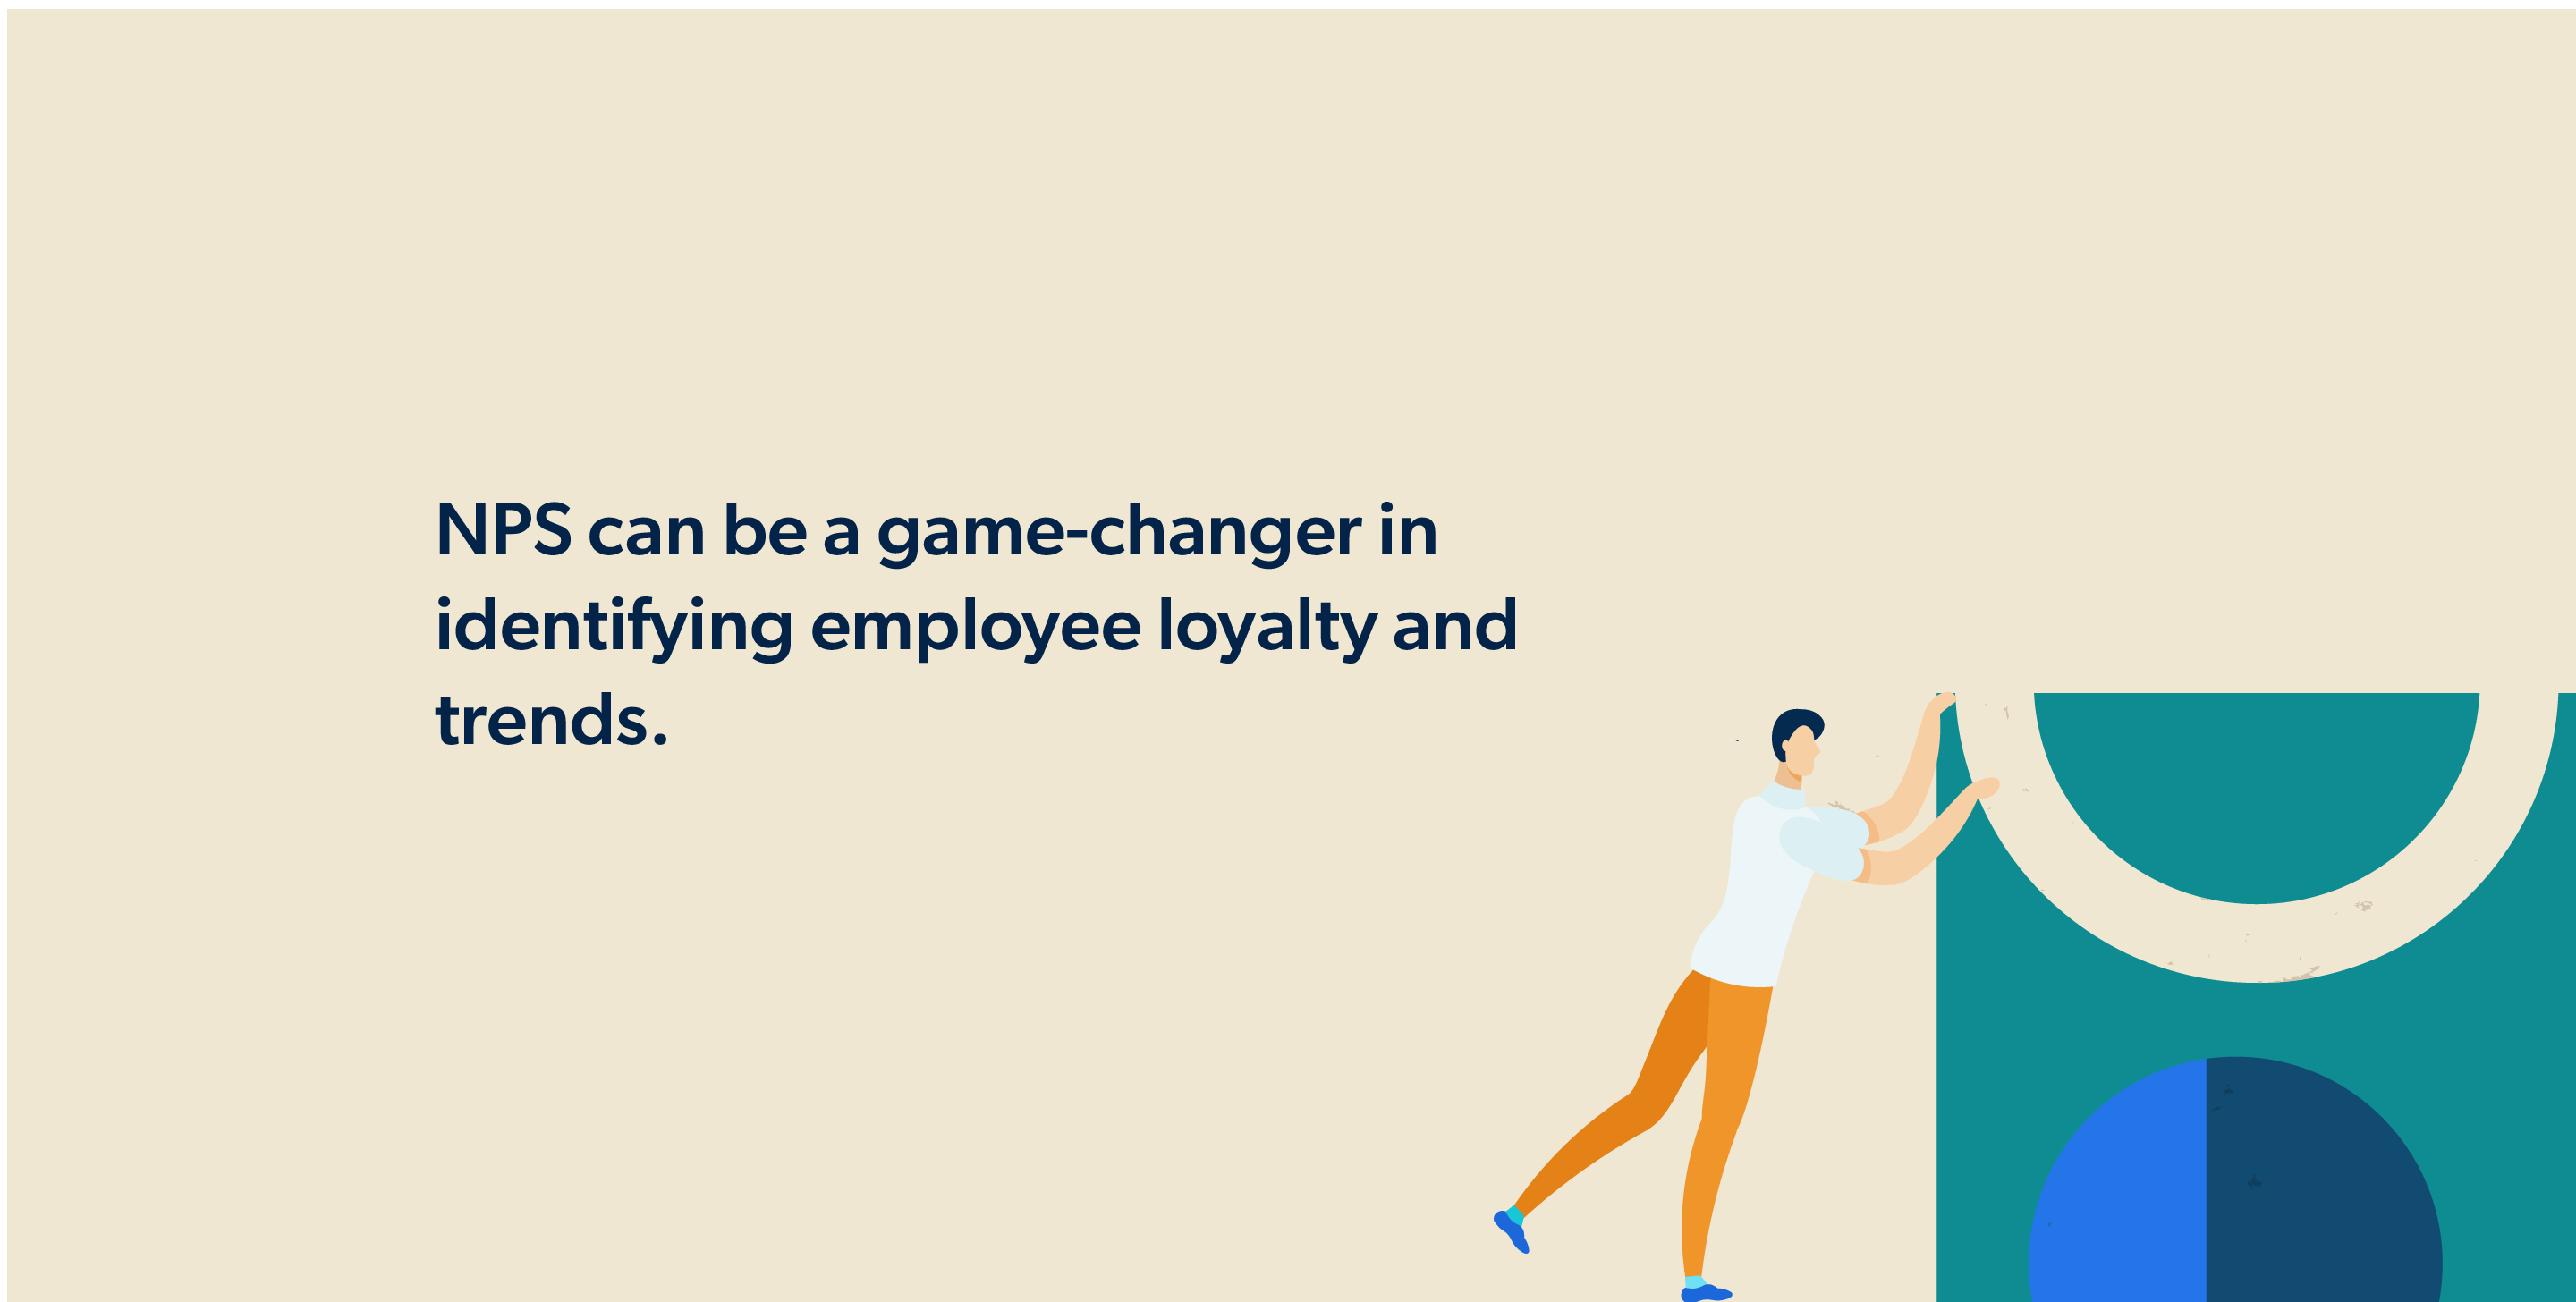 NPS can be a game-changer in identifying employee loyalty and trends.